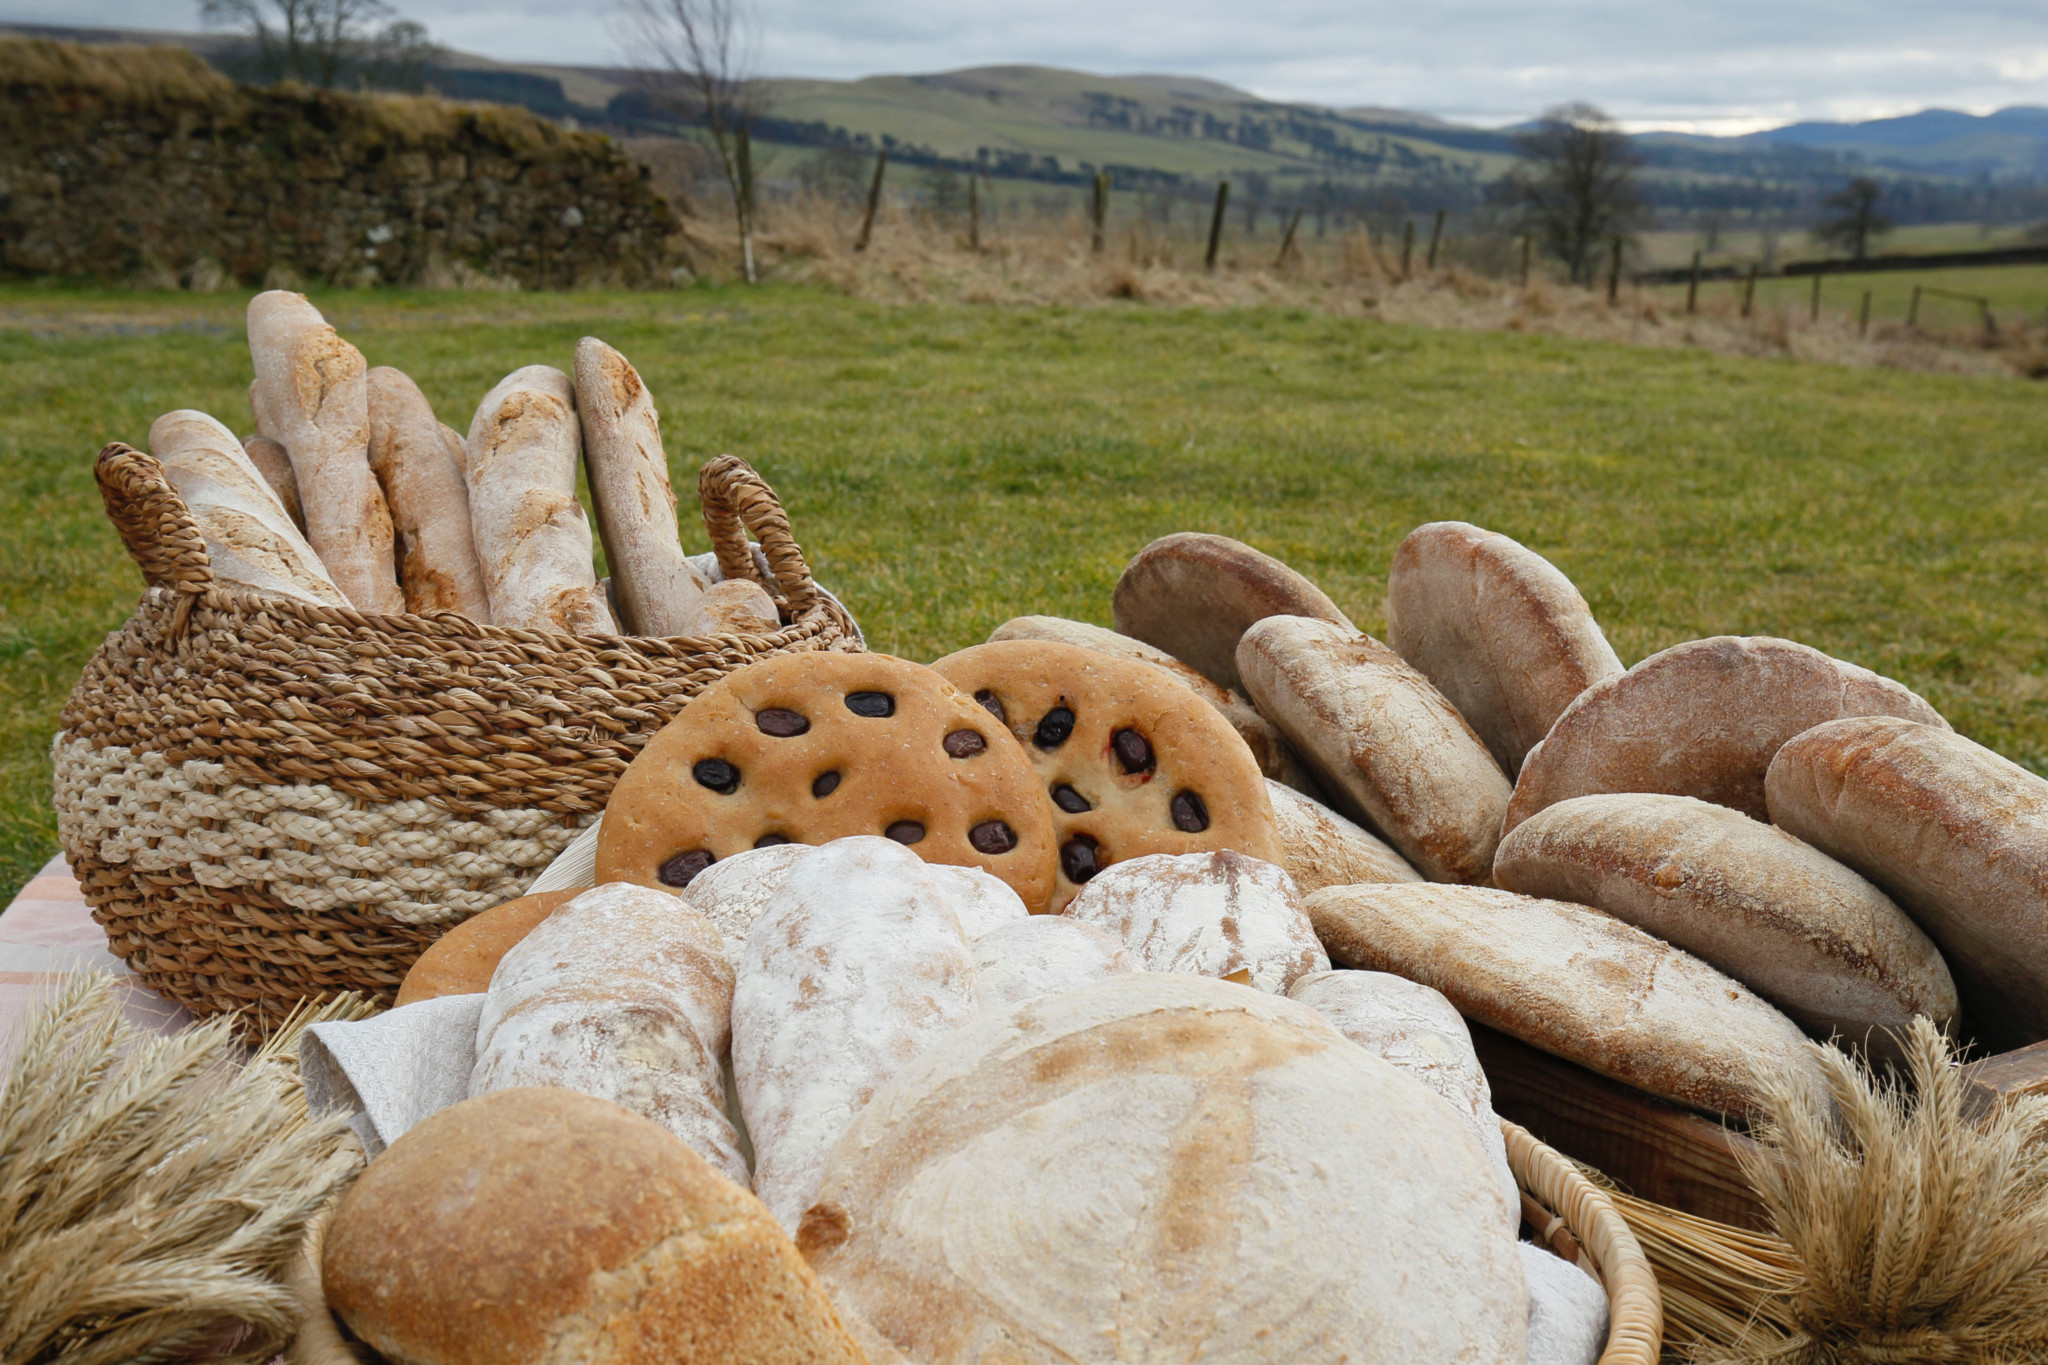 'Scotland The Bread' launches a Community Share Offer